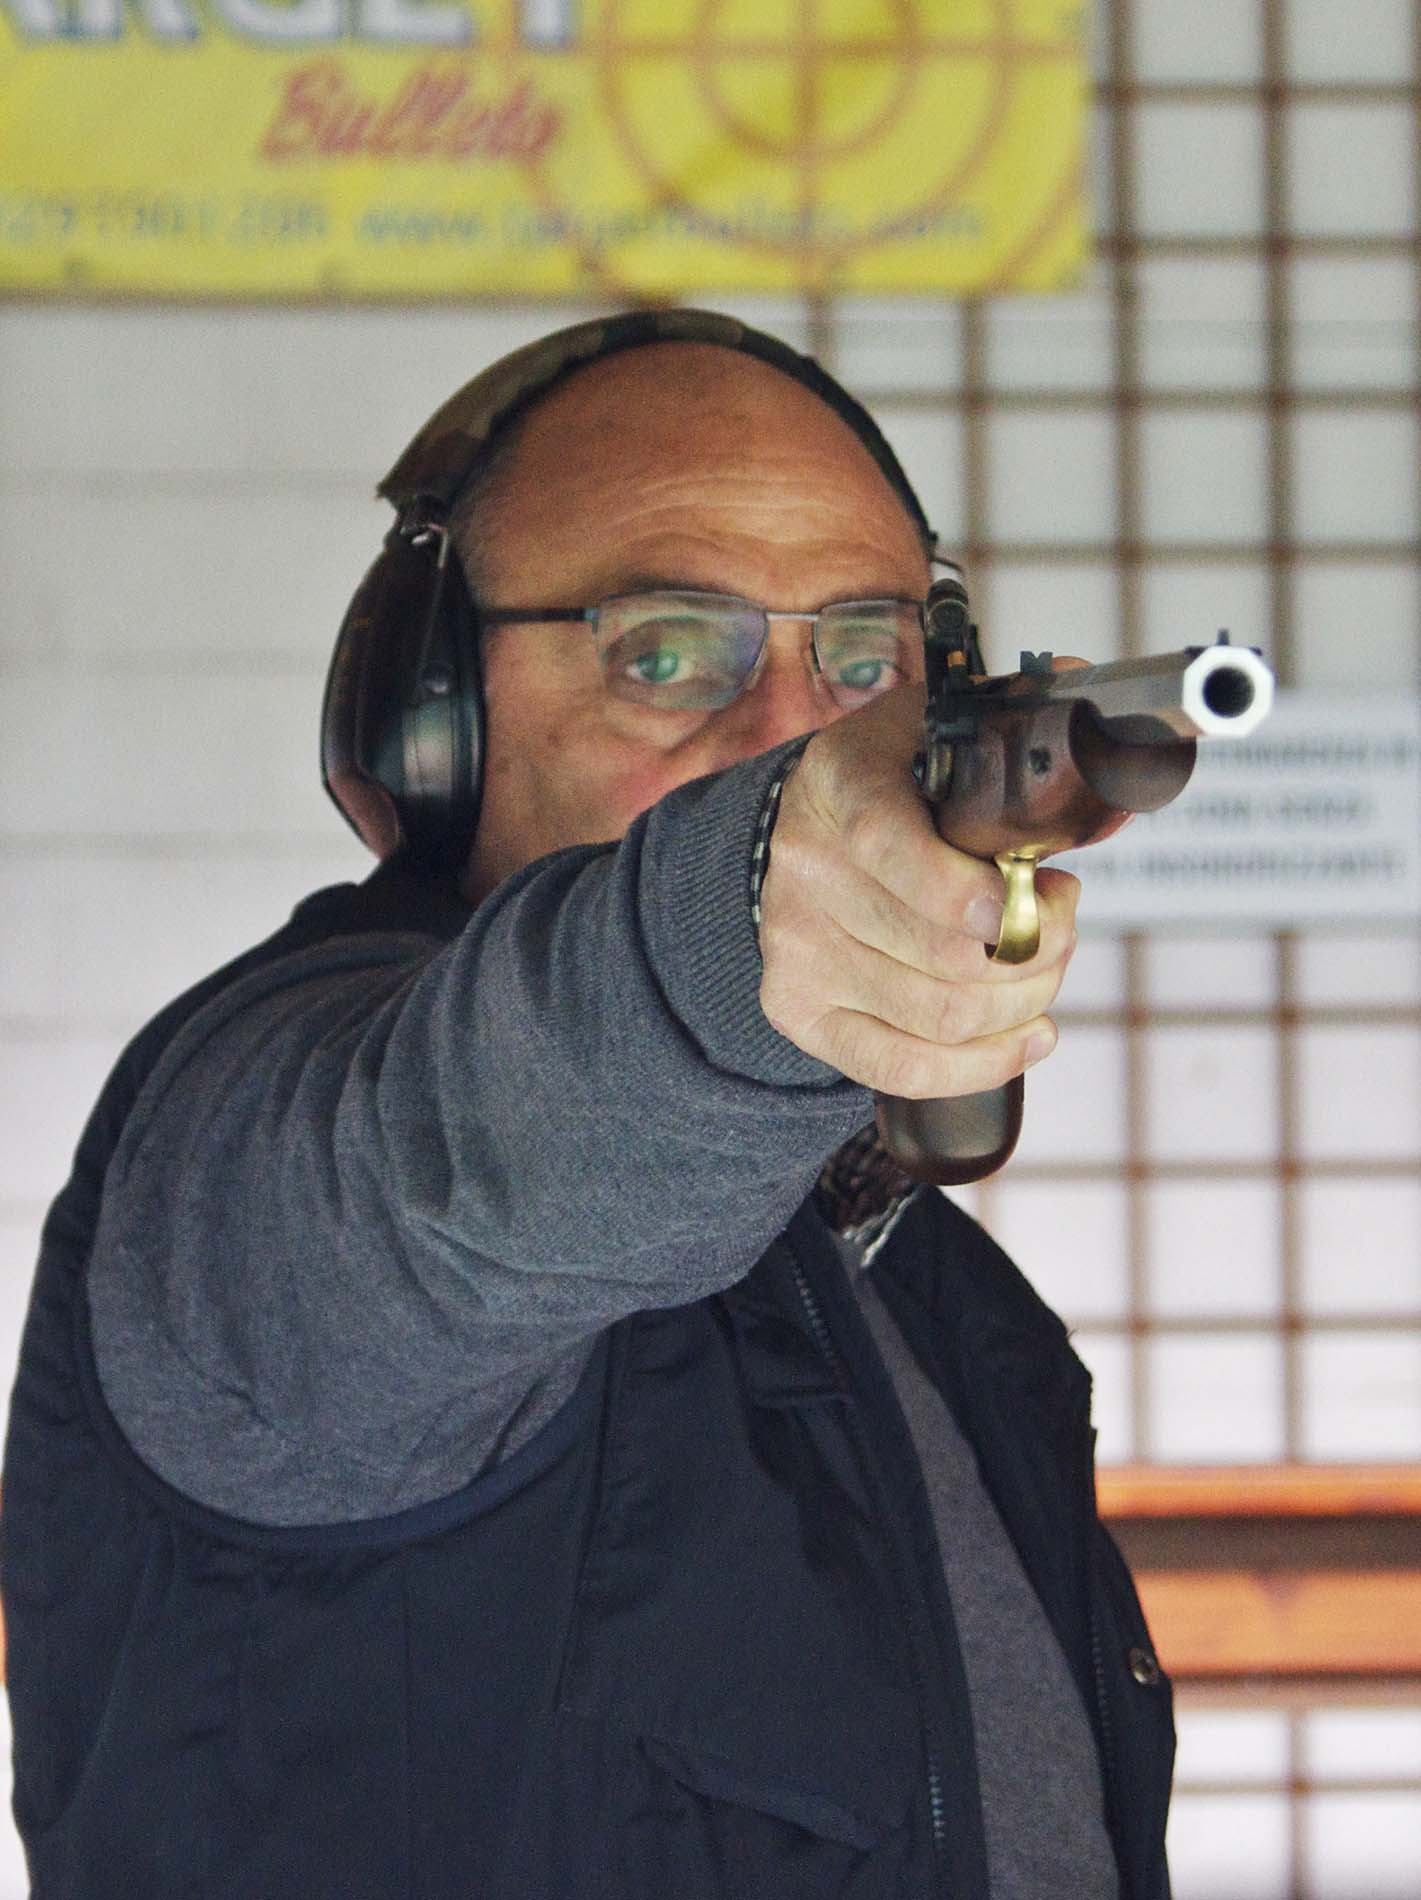 Test shooting with the Pedersoli Continental Target pistol